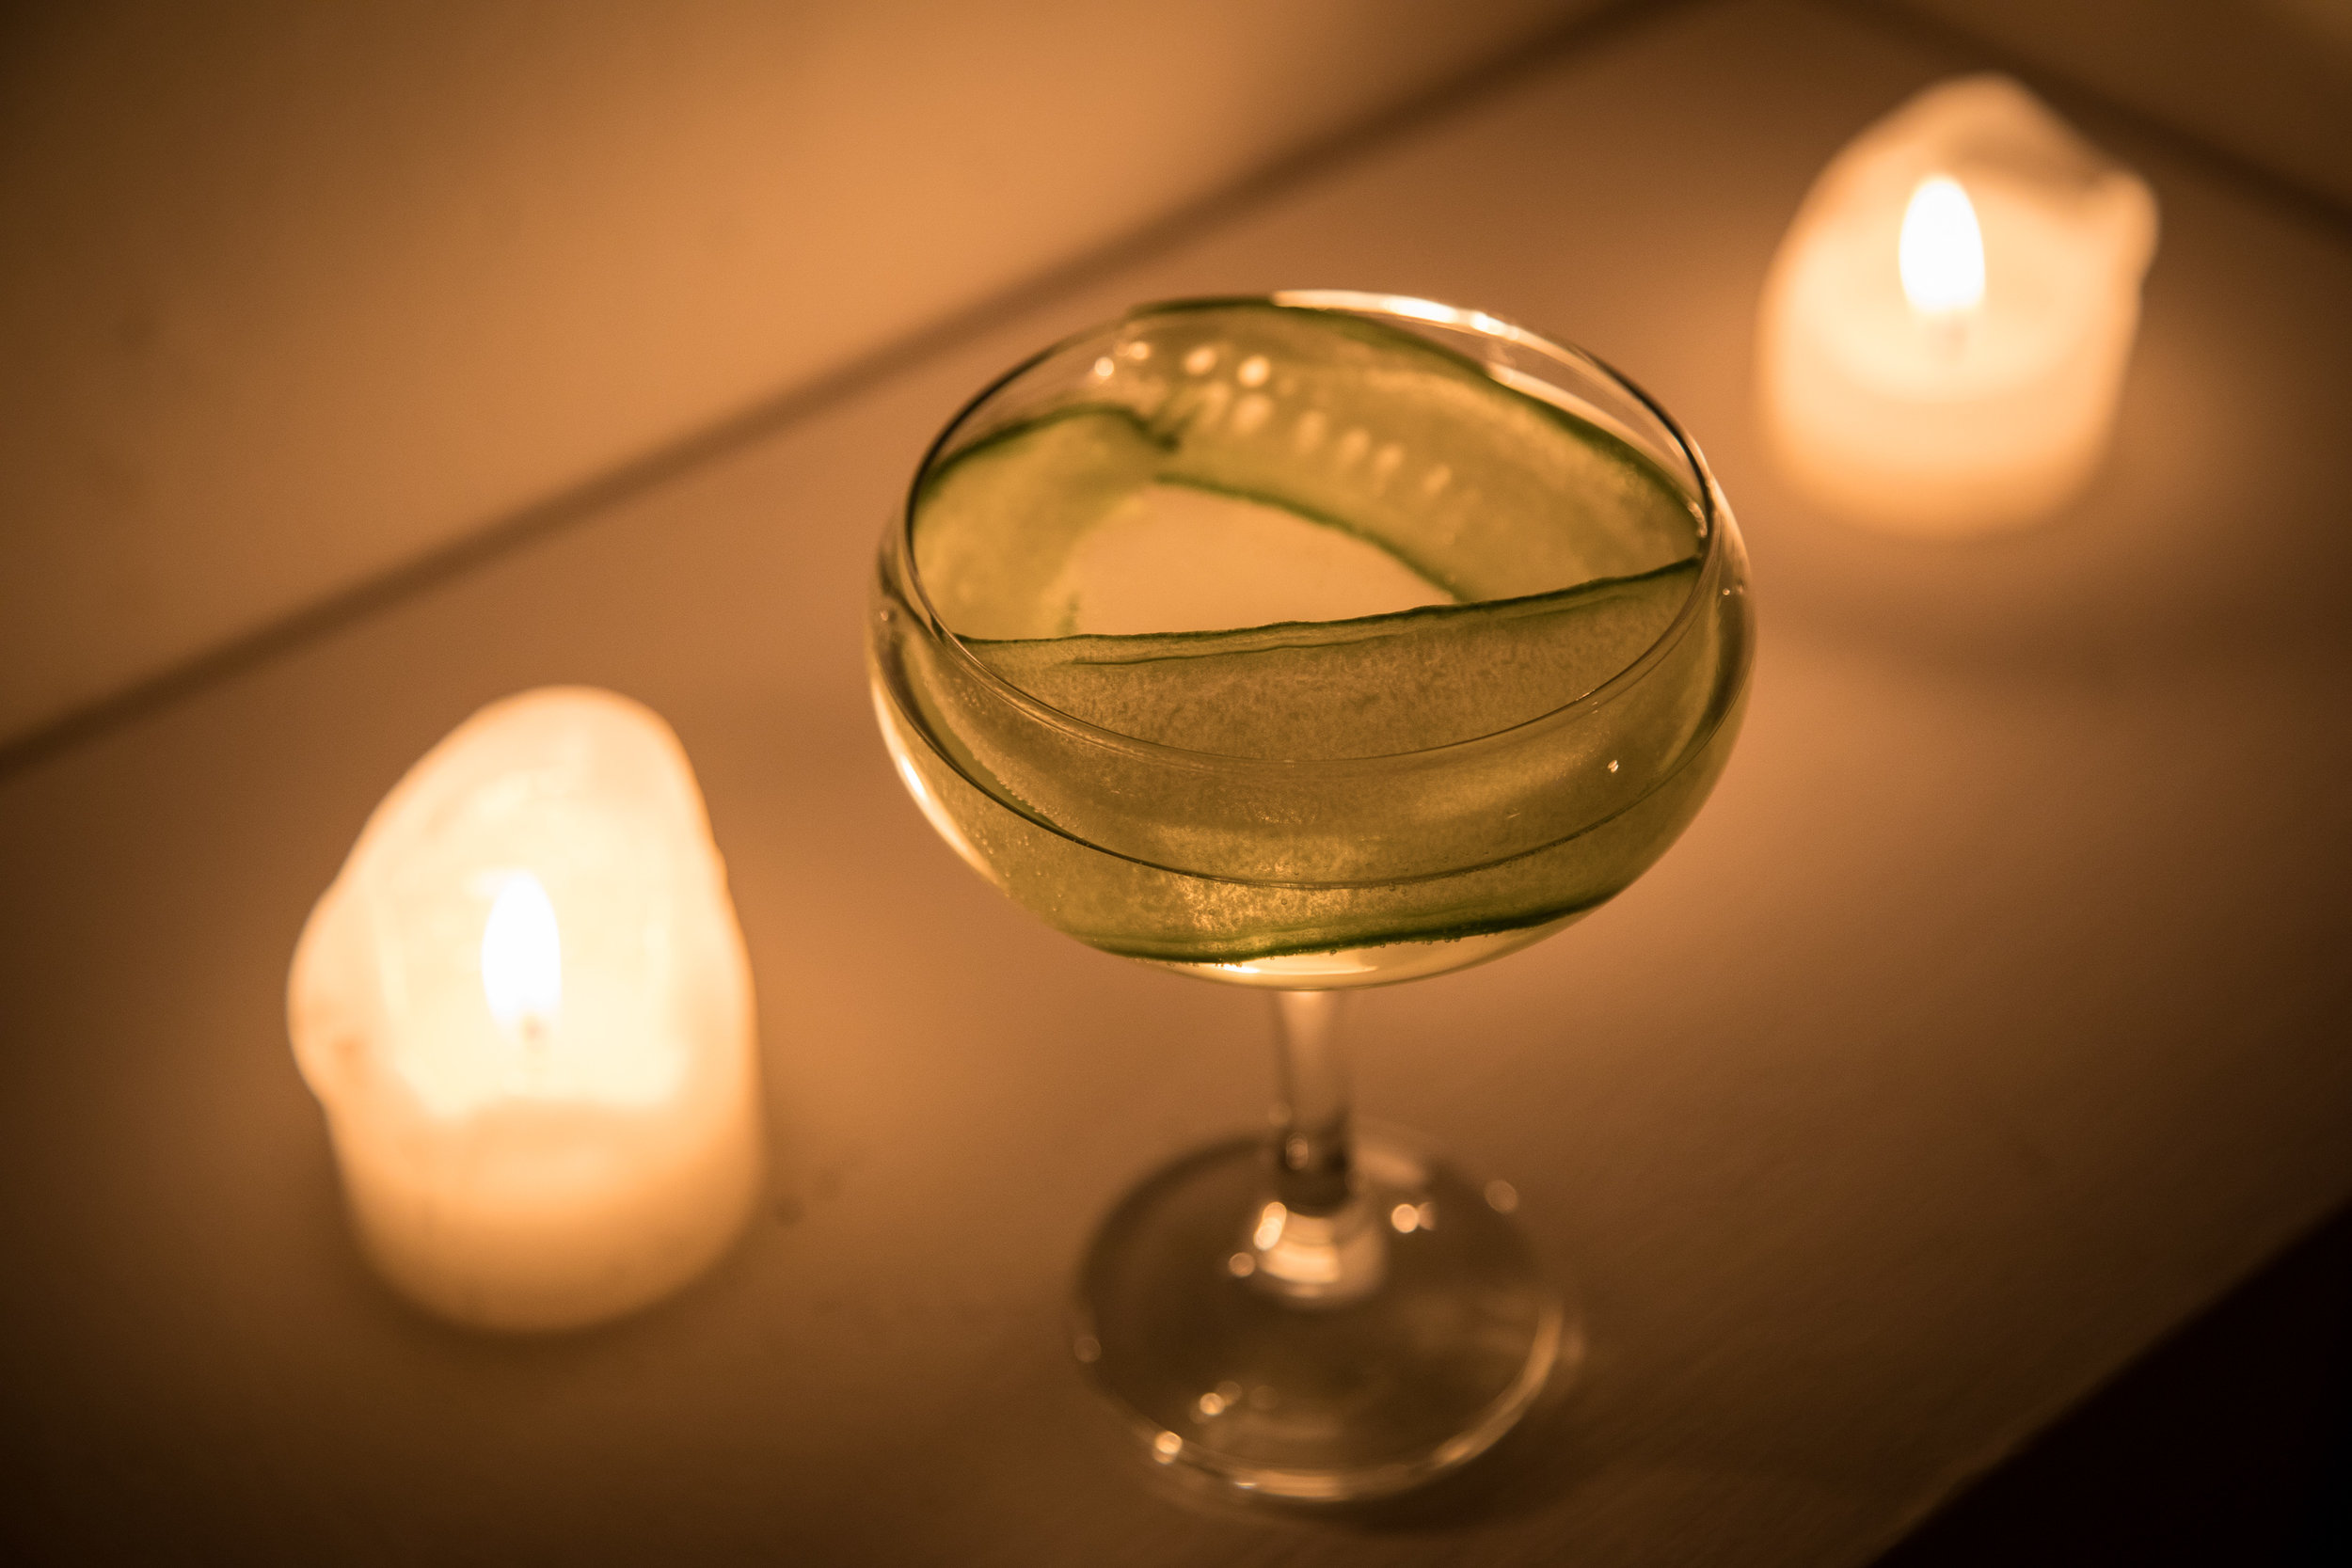 - A Tolstoy Tipple